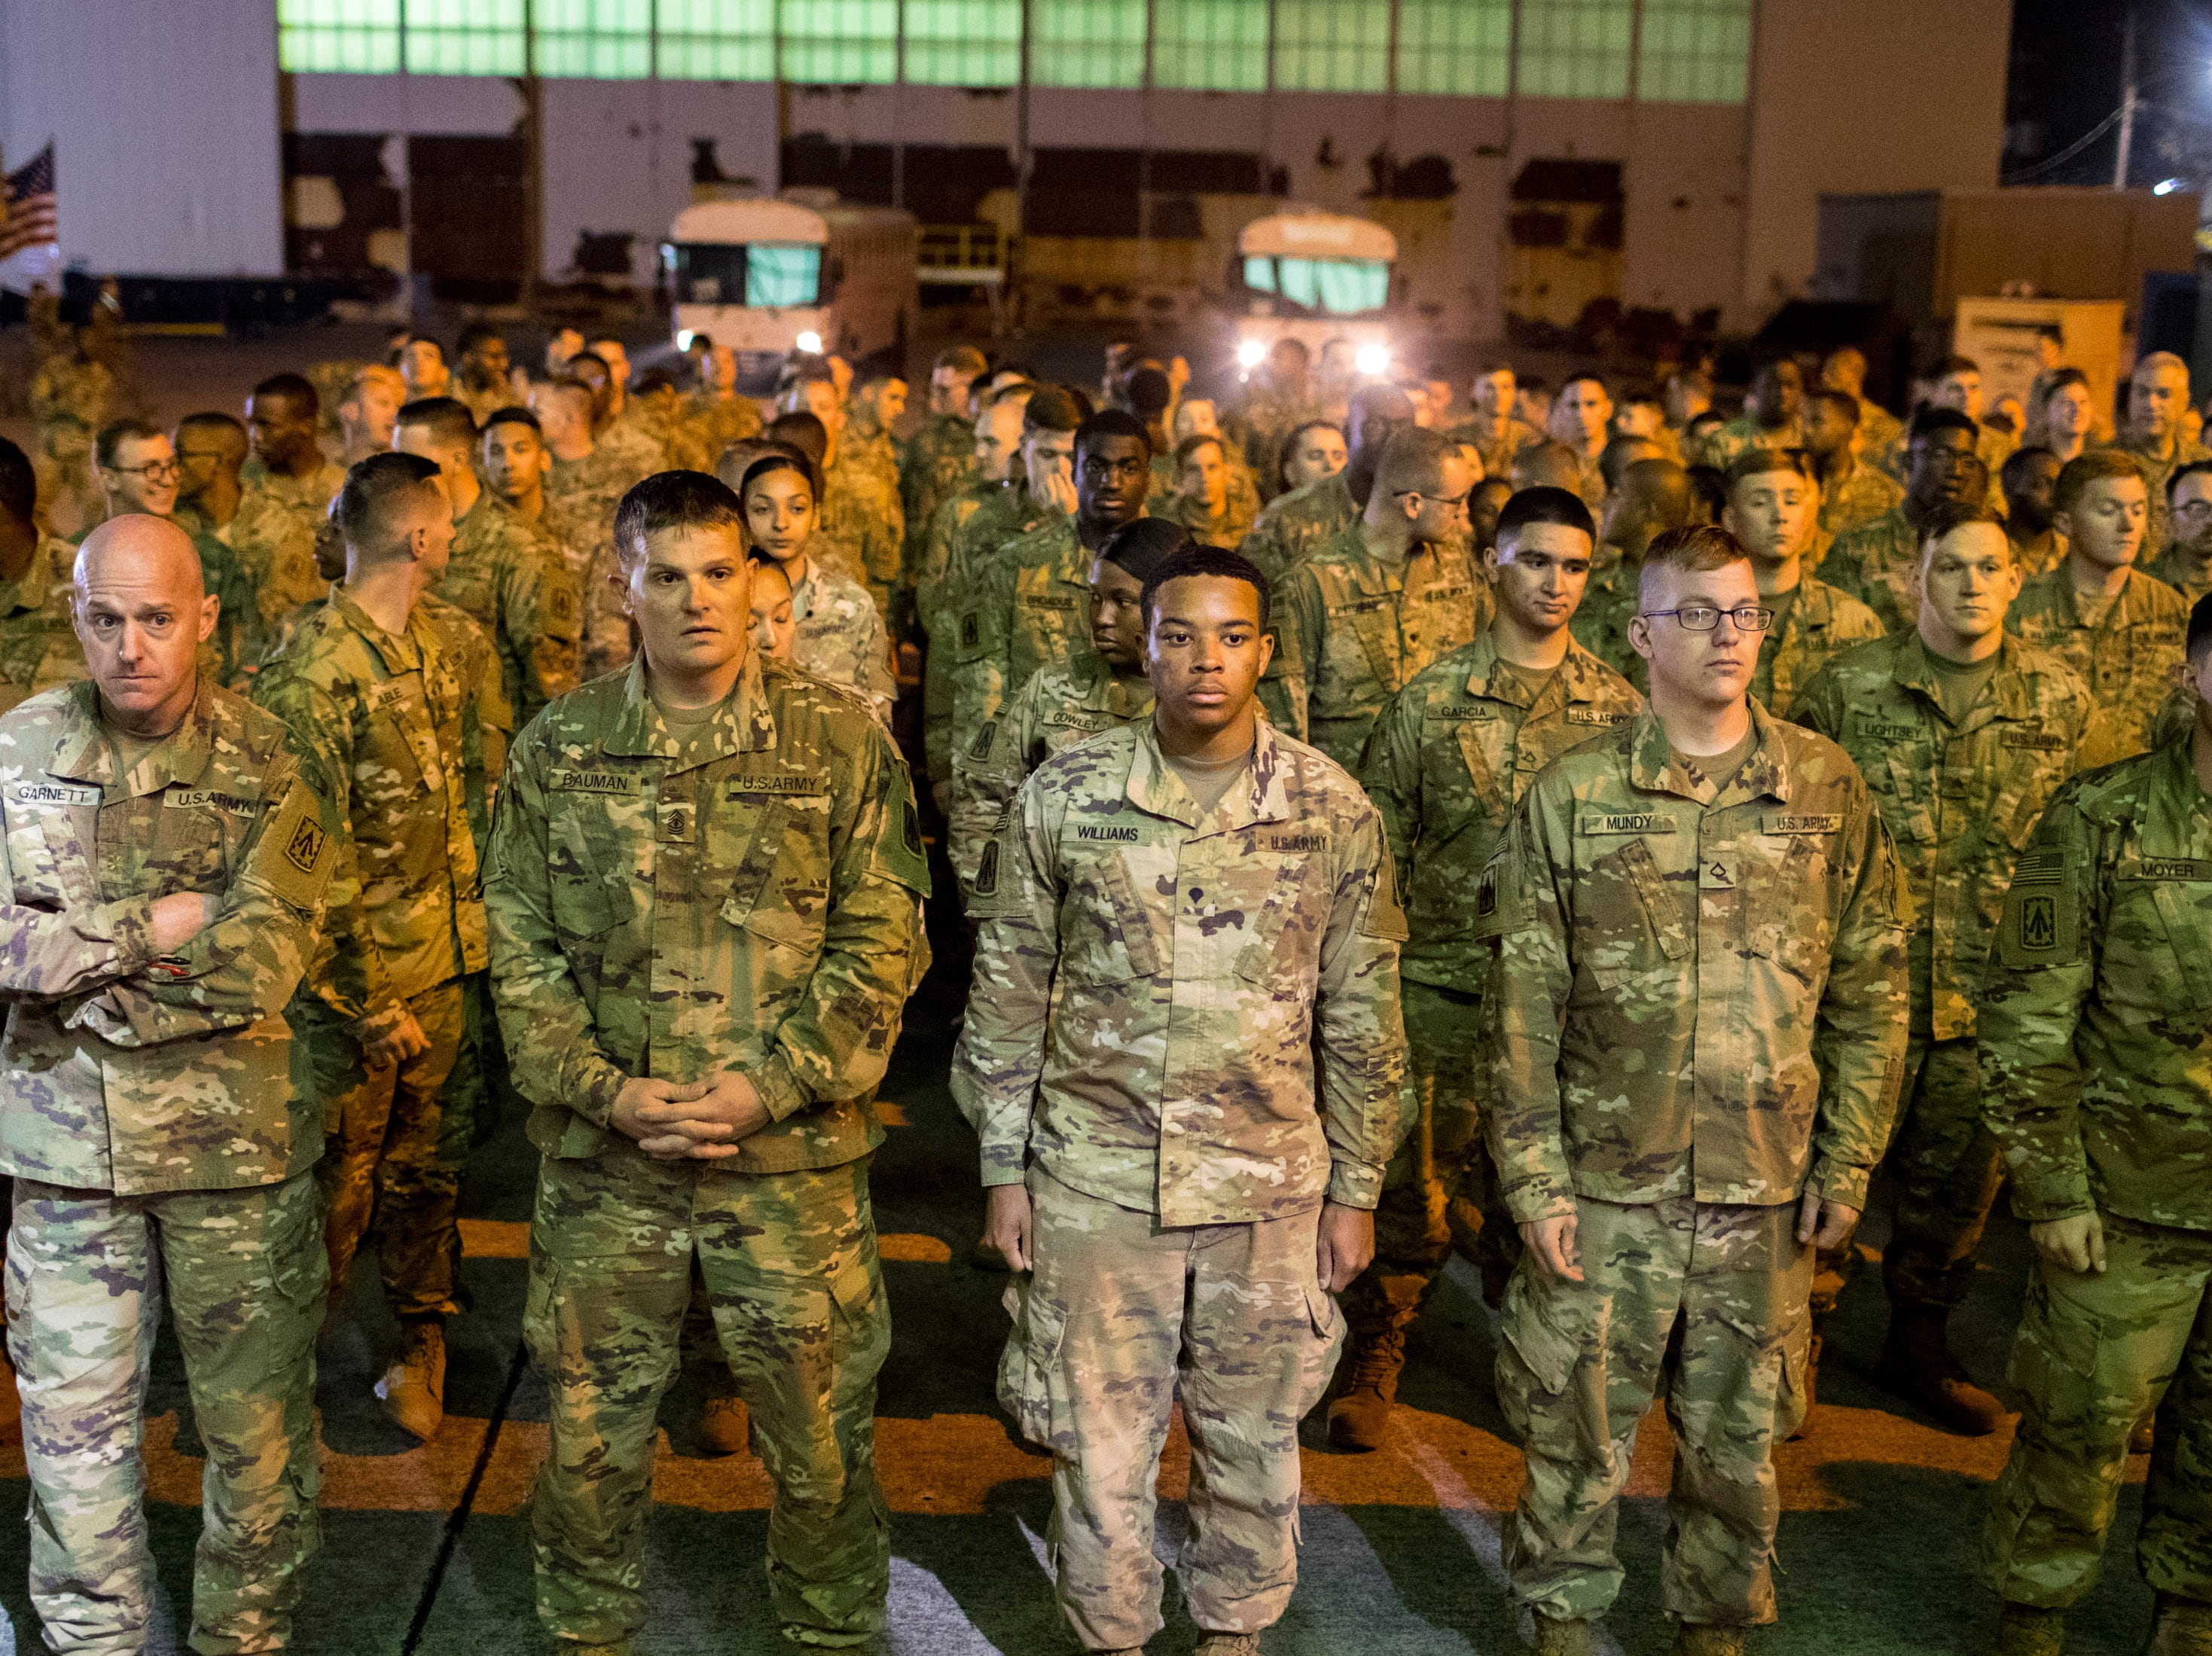 After dropping their weapons and packs the soldiers prepare to enter the welcome home ceremony for the 2nd Battalion, 44th Air Defense Artillery Regiment and 101st Airborne Division at Fort Campbell in the early hours of Monday, Nov. 19, 2018. The soldiers were returning from a 9-month deployment in Afghanistan.